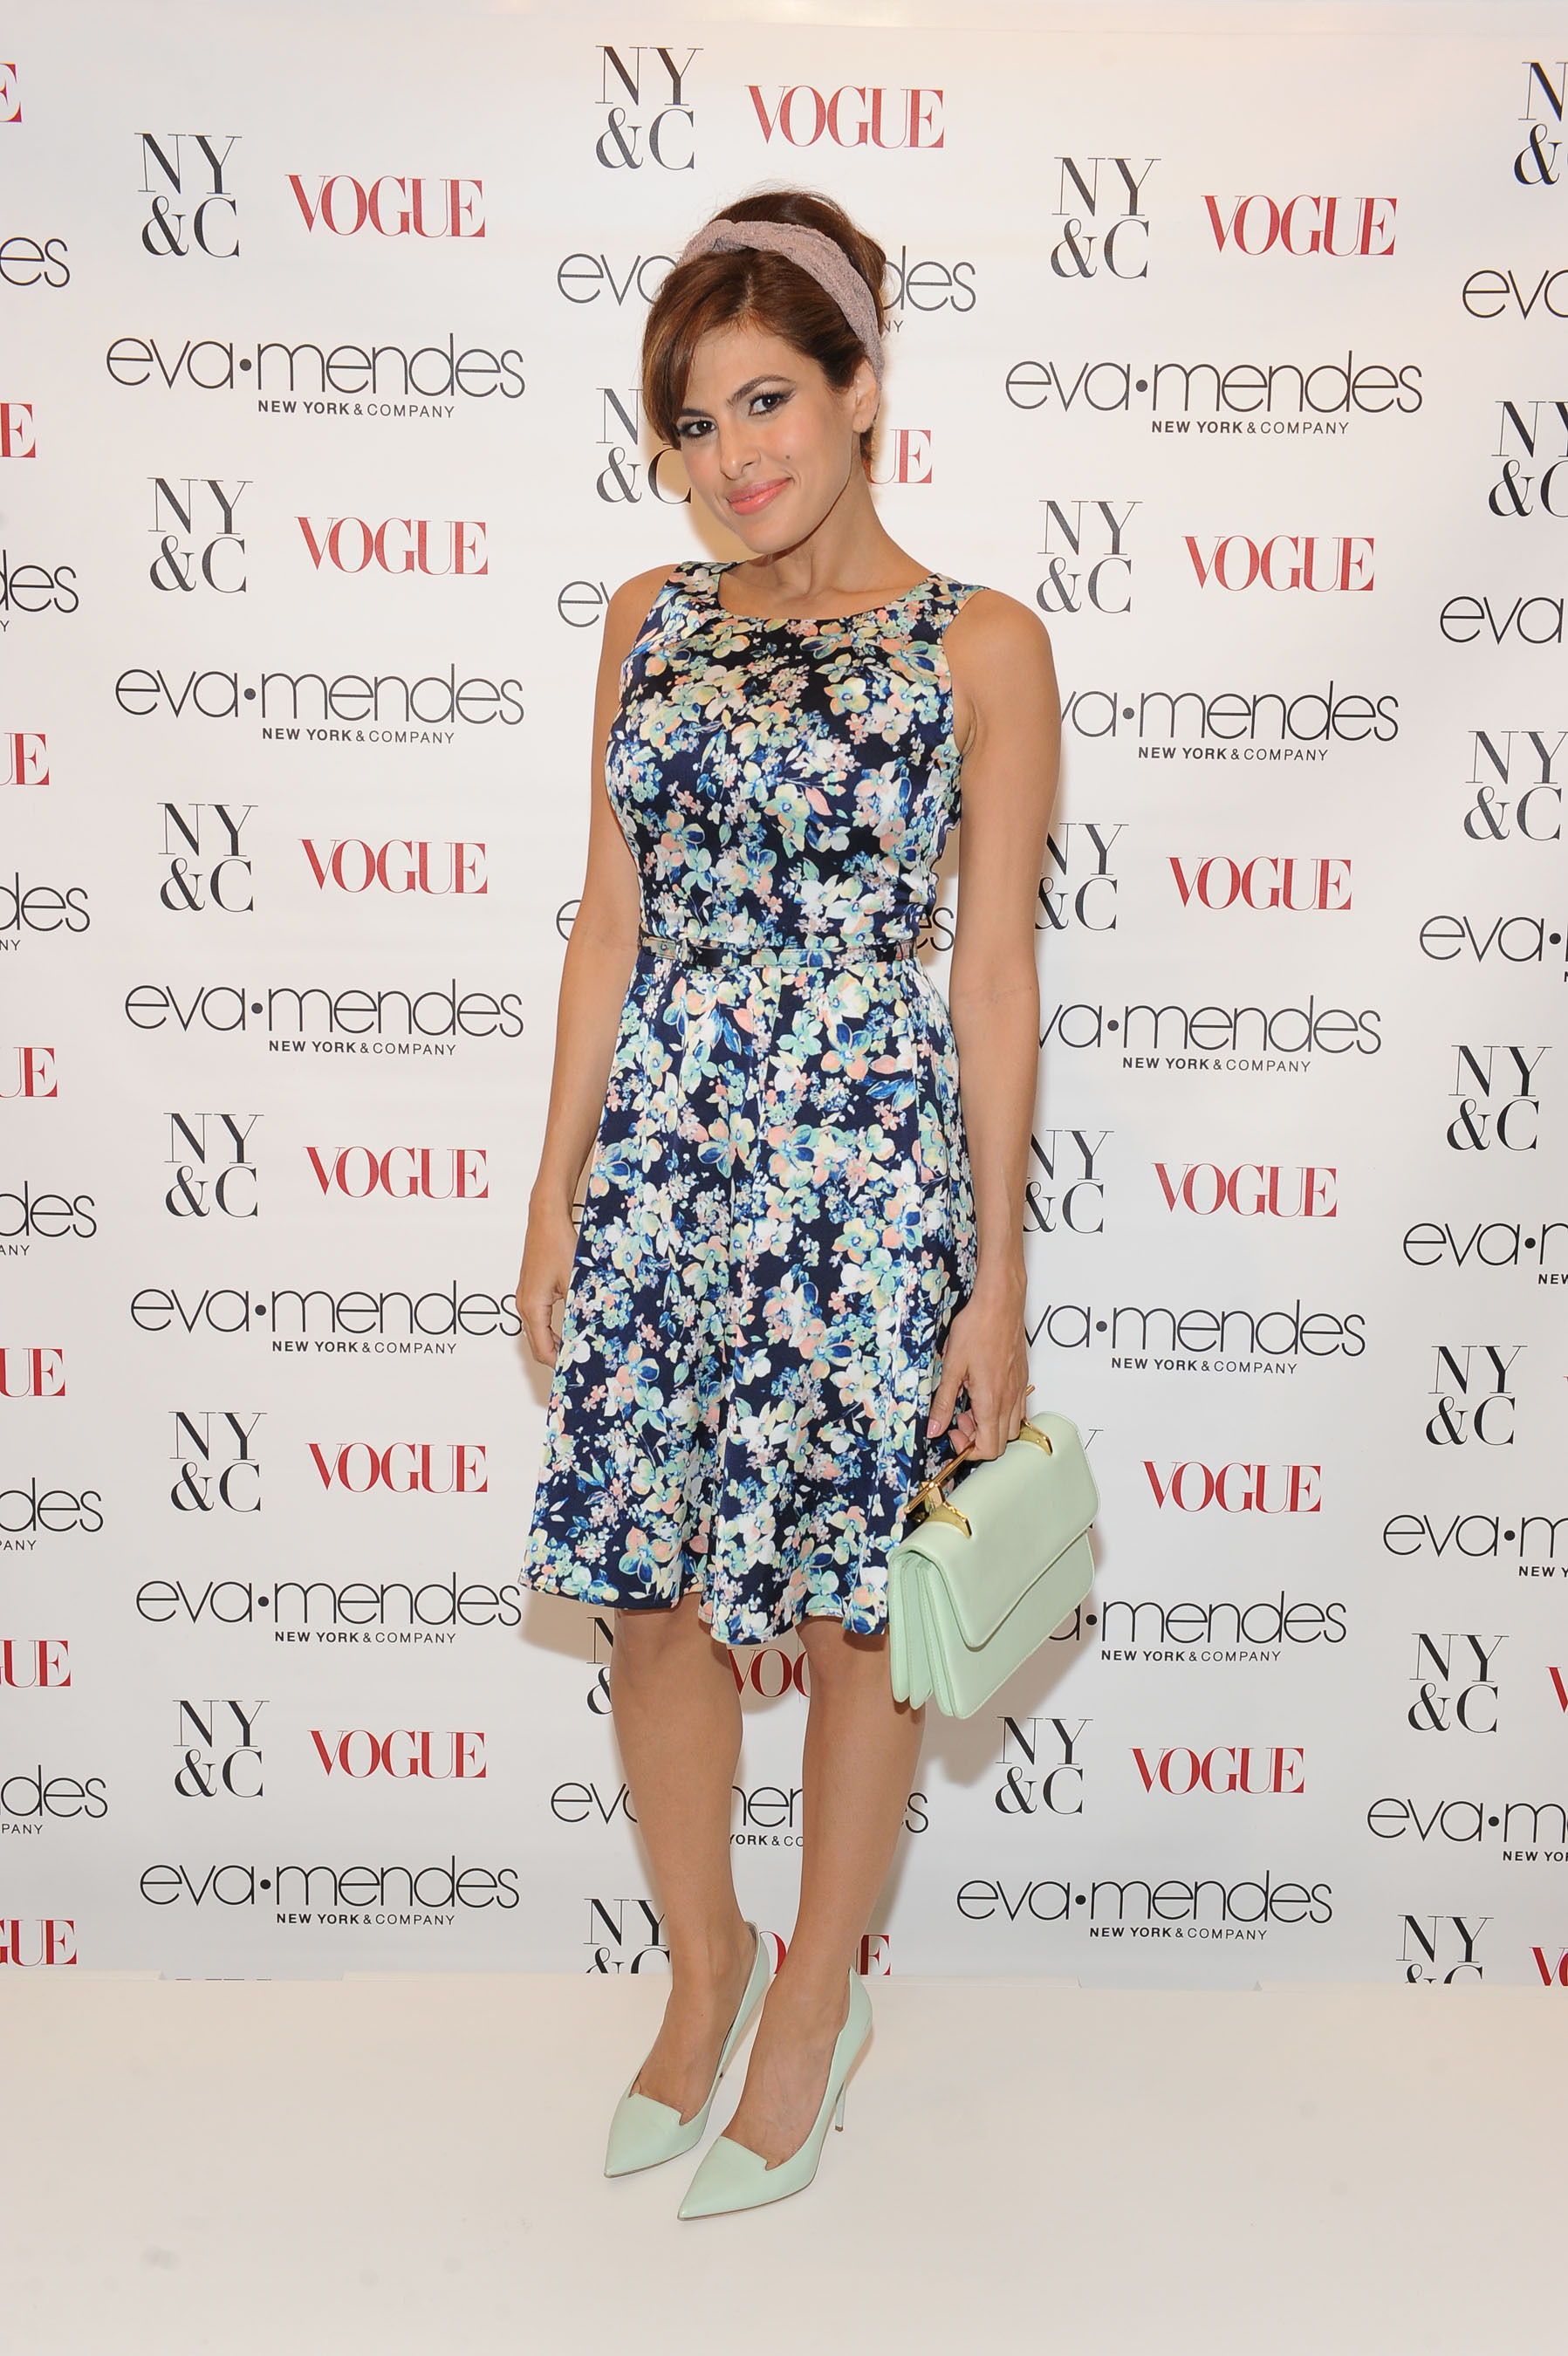 Eva Mendes Debuted Her Spring Collection for New York & Company